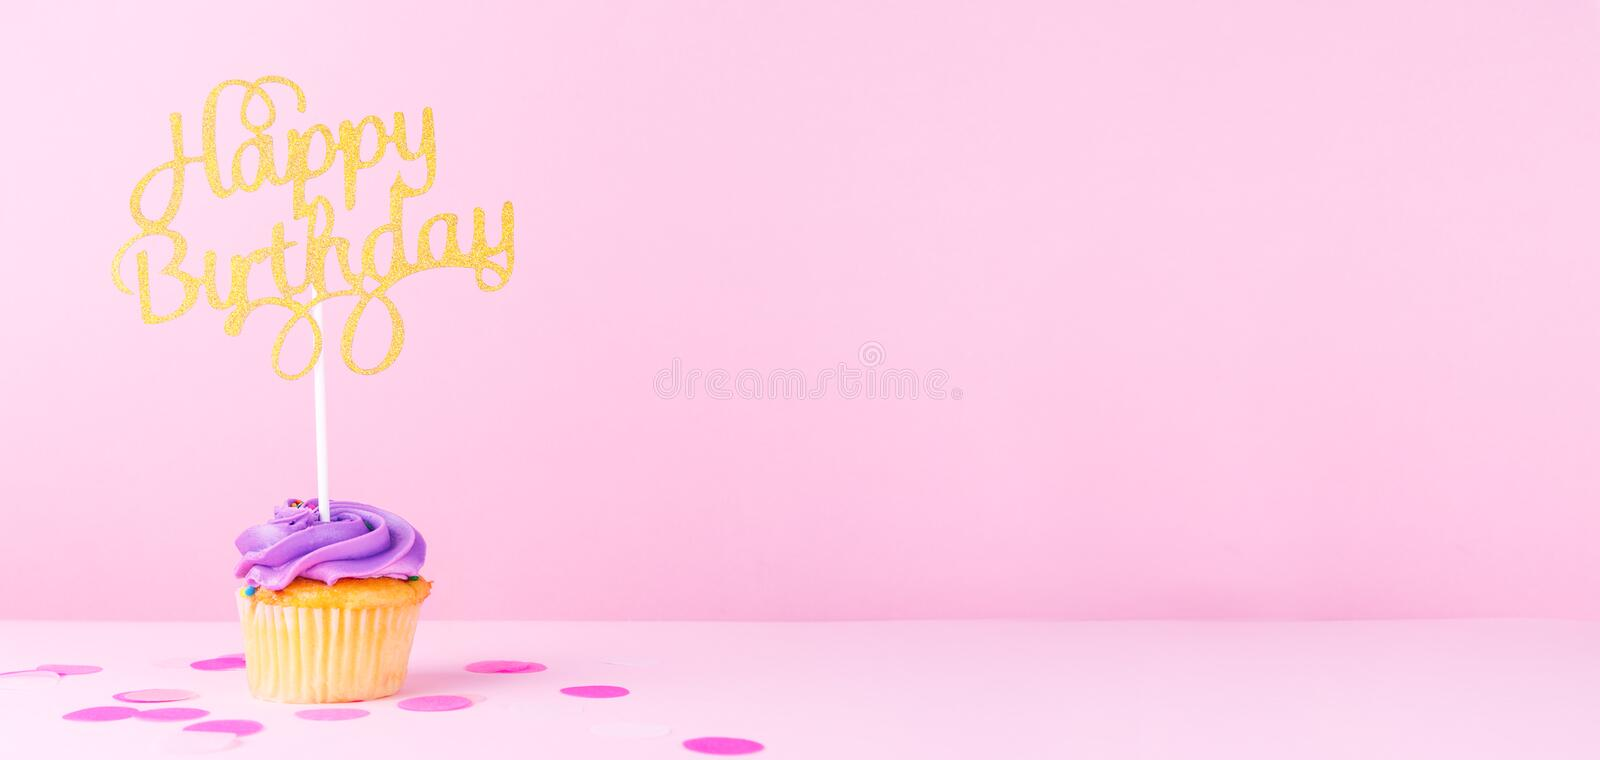 Creative pastel fantasy holiday card with cupcake and happy birthday topper. Baby shower, birthday, celebration concept. Horizontal, wide screen banner format royalty free stock photography